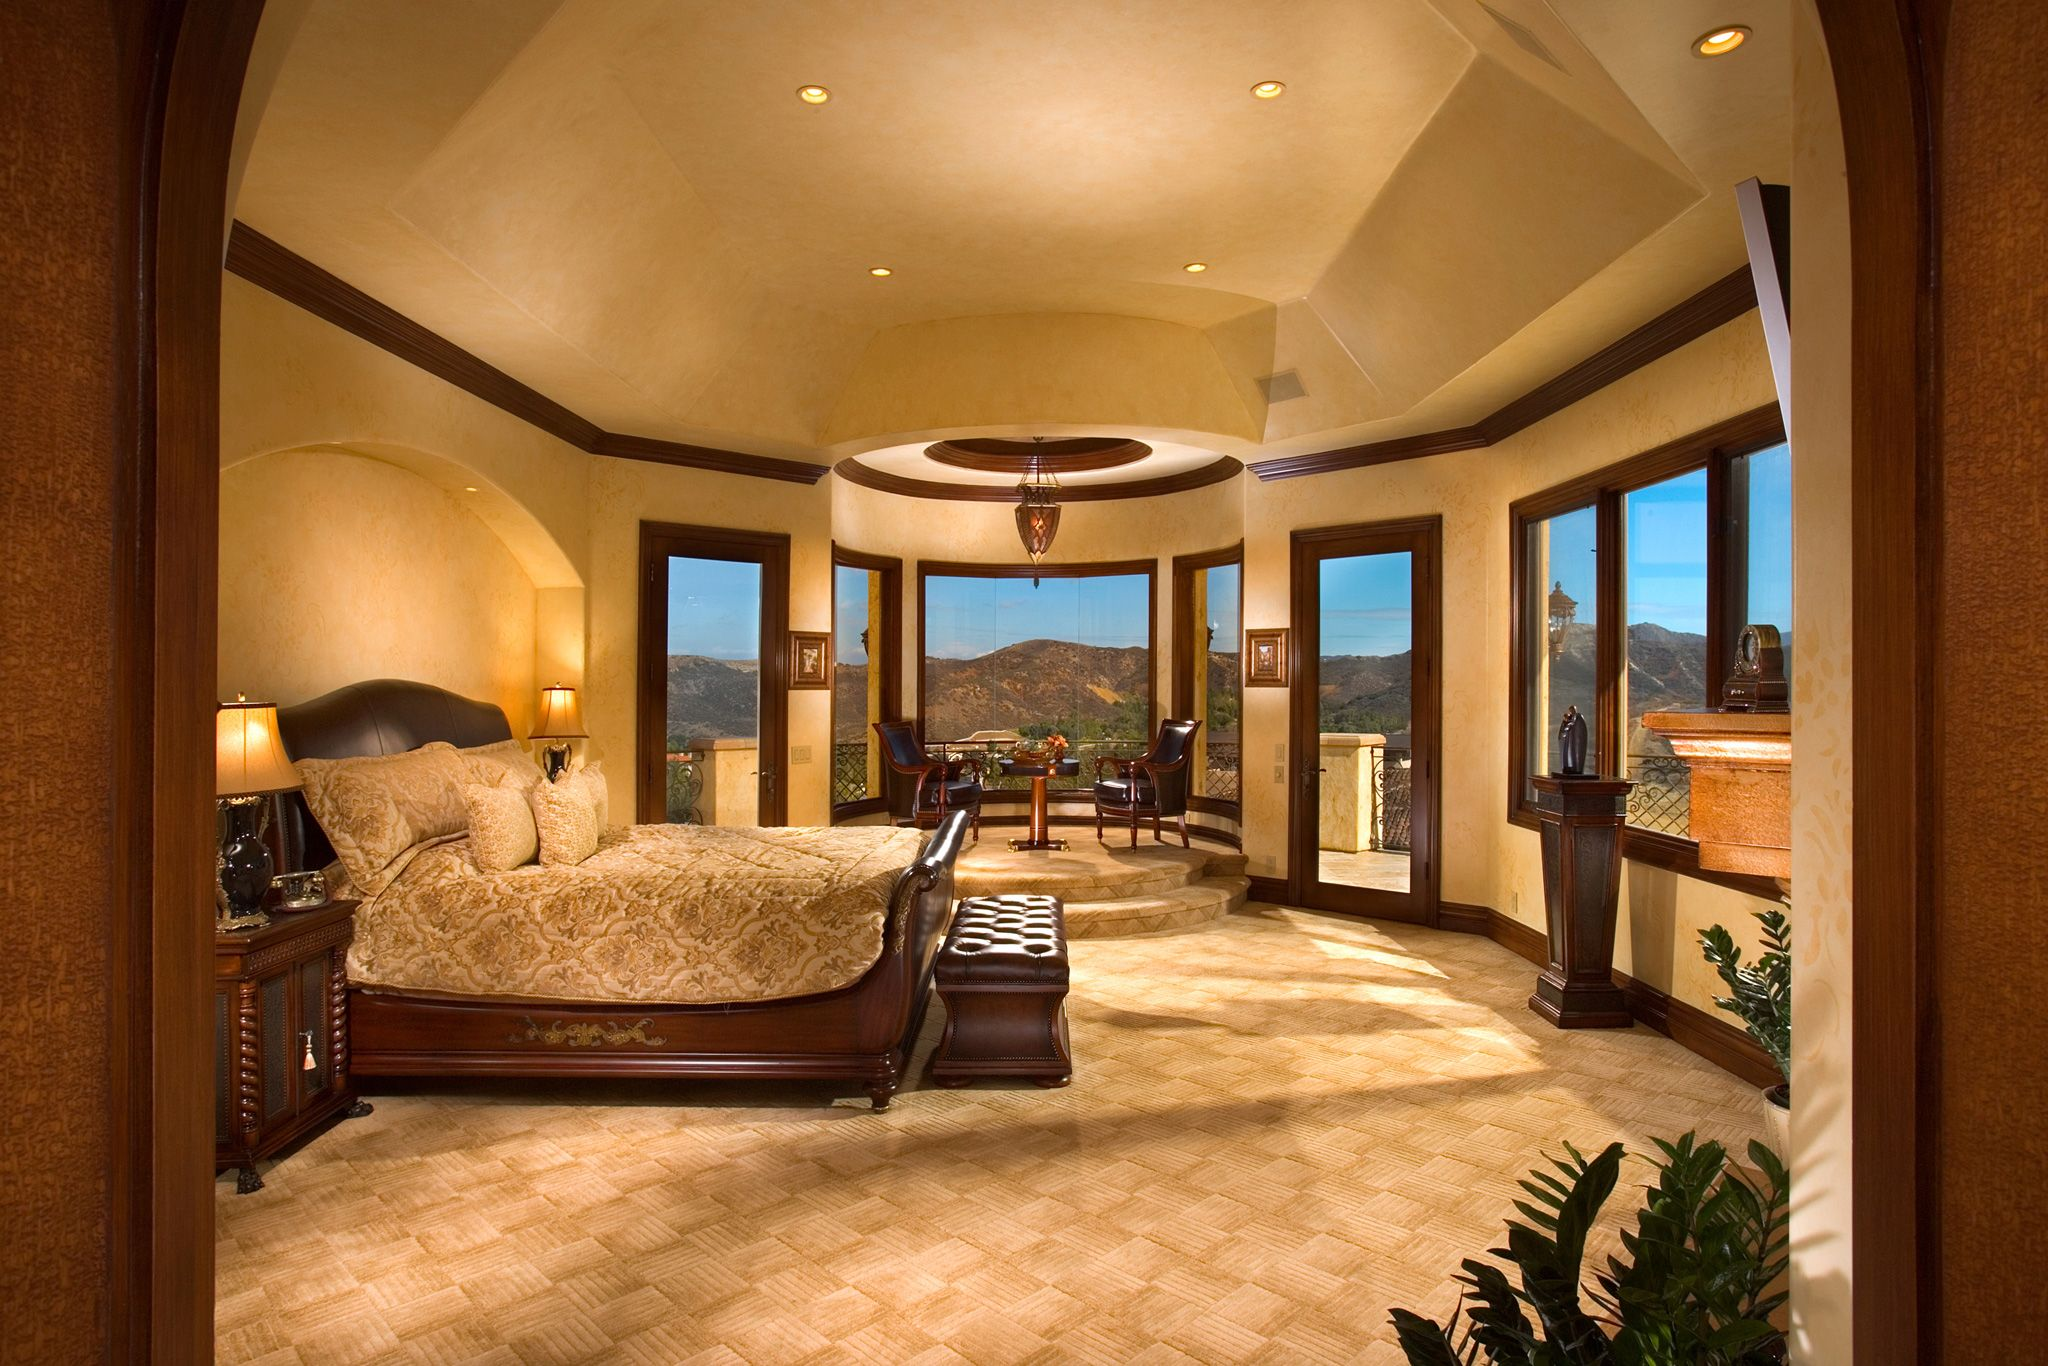 Sitting Room For Master Bedrooms 21 Incredible Master Bedrooms Design Ideas Luxury Master Bedroom